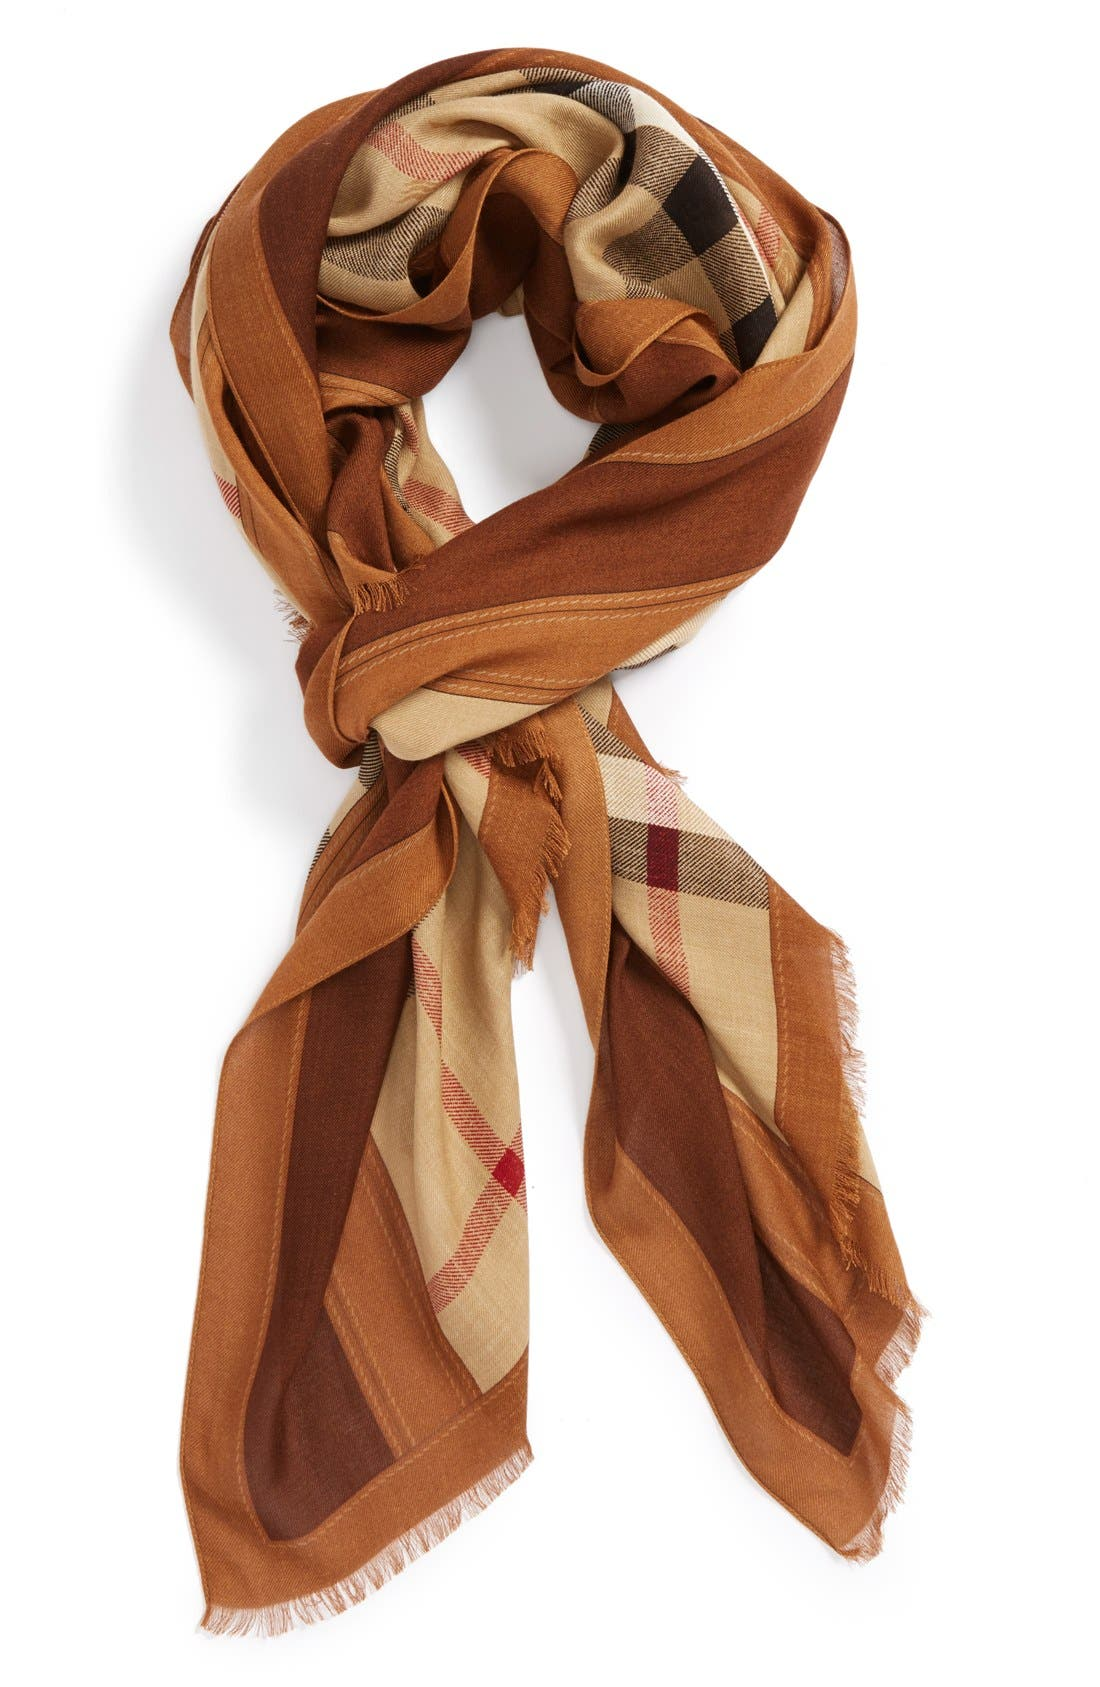 Alternate Image 1 Selected - Burberry 'Haymarket Check' Modal & Cashmere Scarf